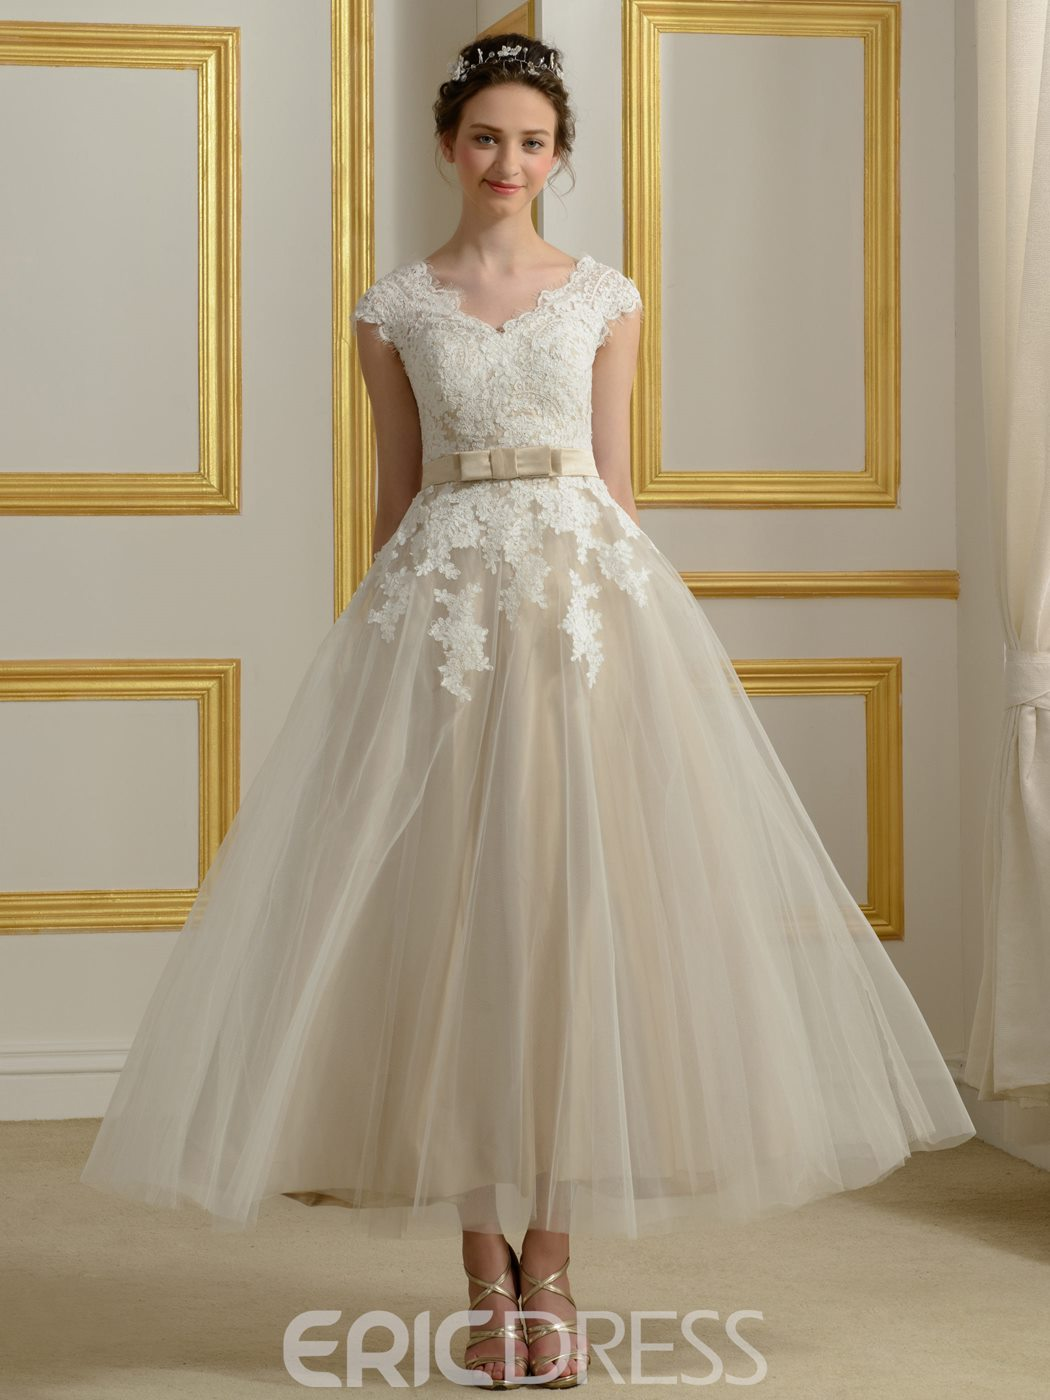 Ericdress Beautiful V Neck Appliques Reception Wedding Dress